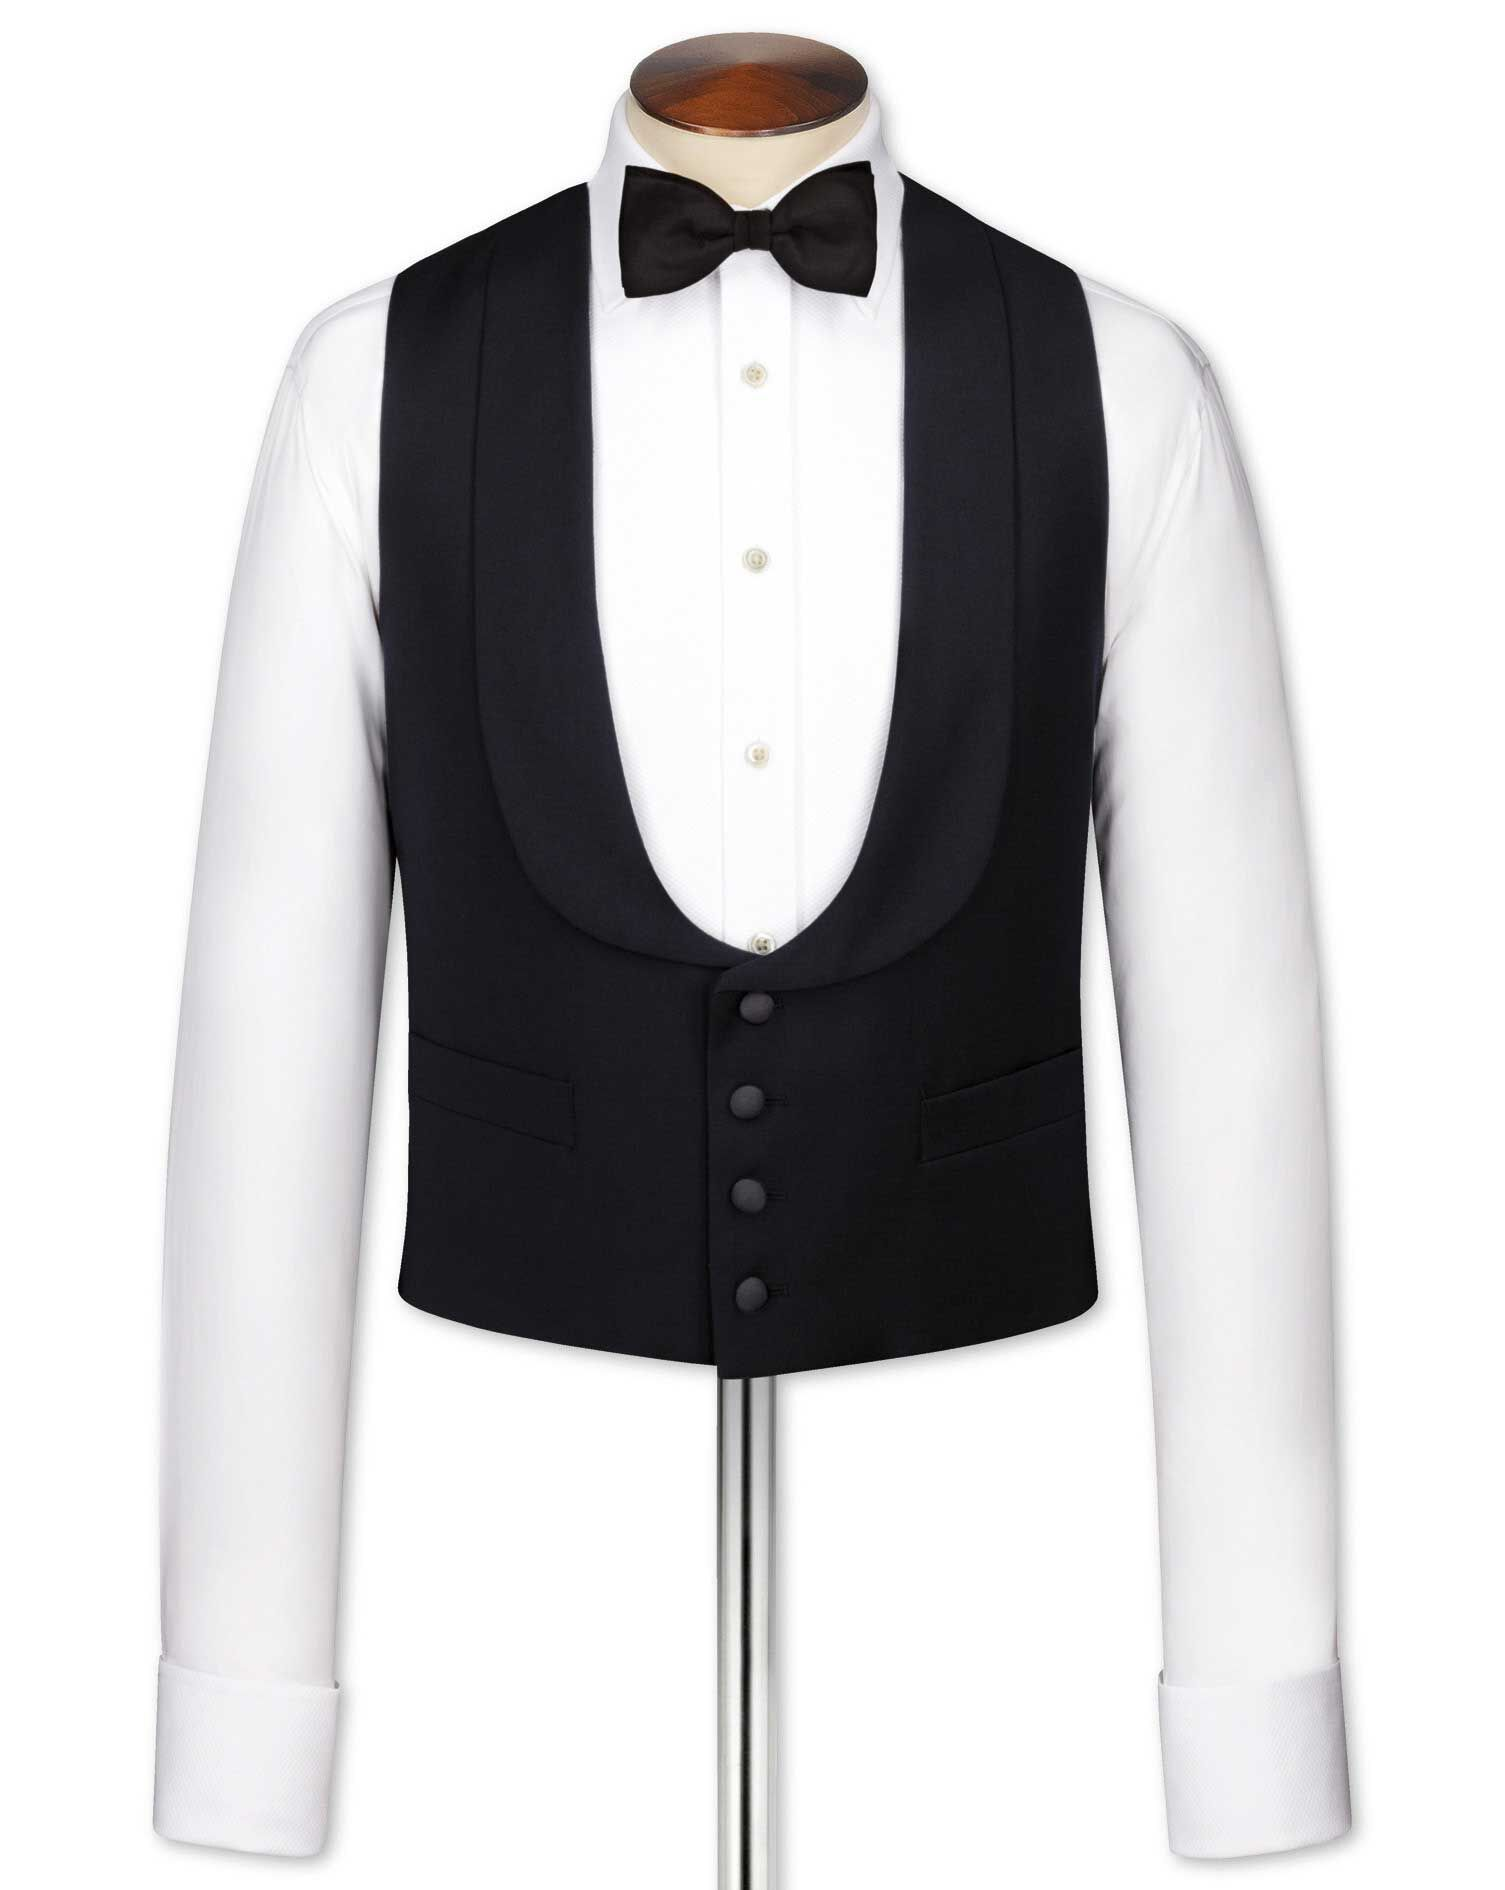 Edwardian Men's Formal Wear Charles Tyrwhitt Black tuxedo waistcoat £70.00 AT vintagedancer.com